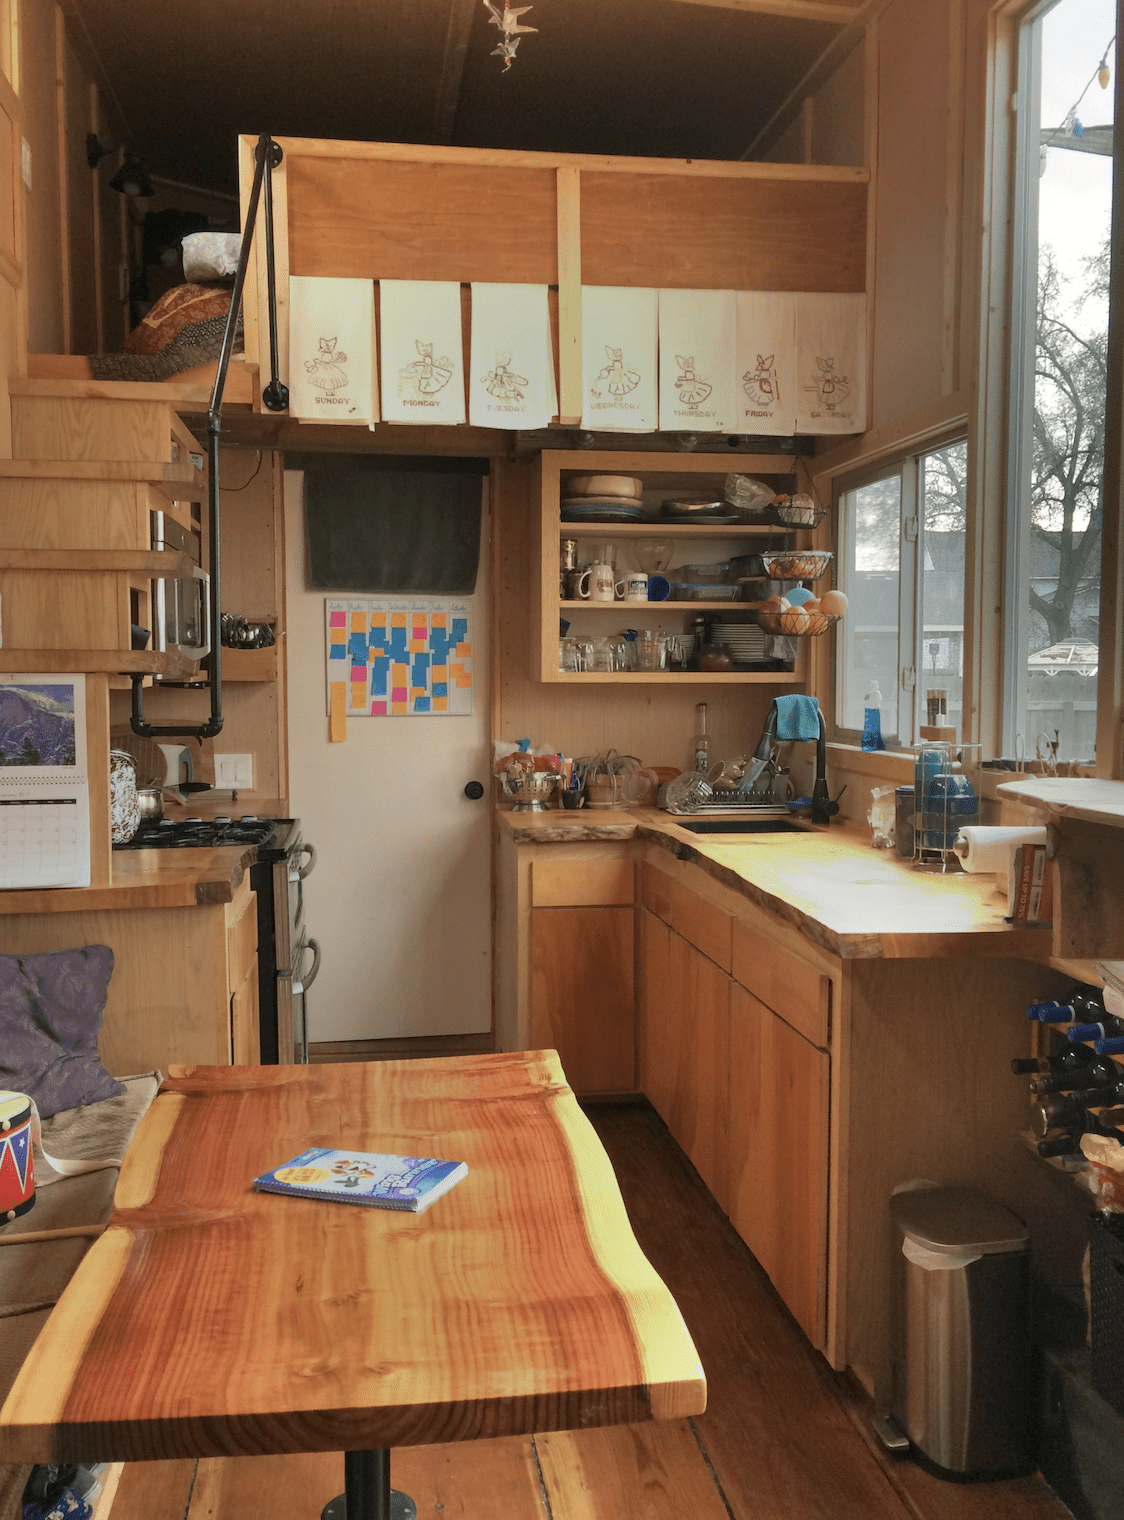 Photos Of Tiny House Kitchens That Show Just How Creative | House Plans With Stairs In Kitchen | Upstairs | Country Kitchen | Hidden Pantry | Luxury | Small House